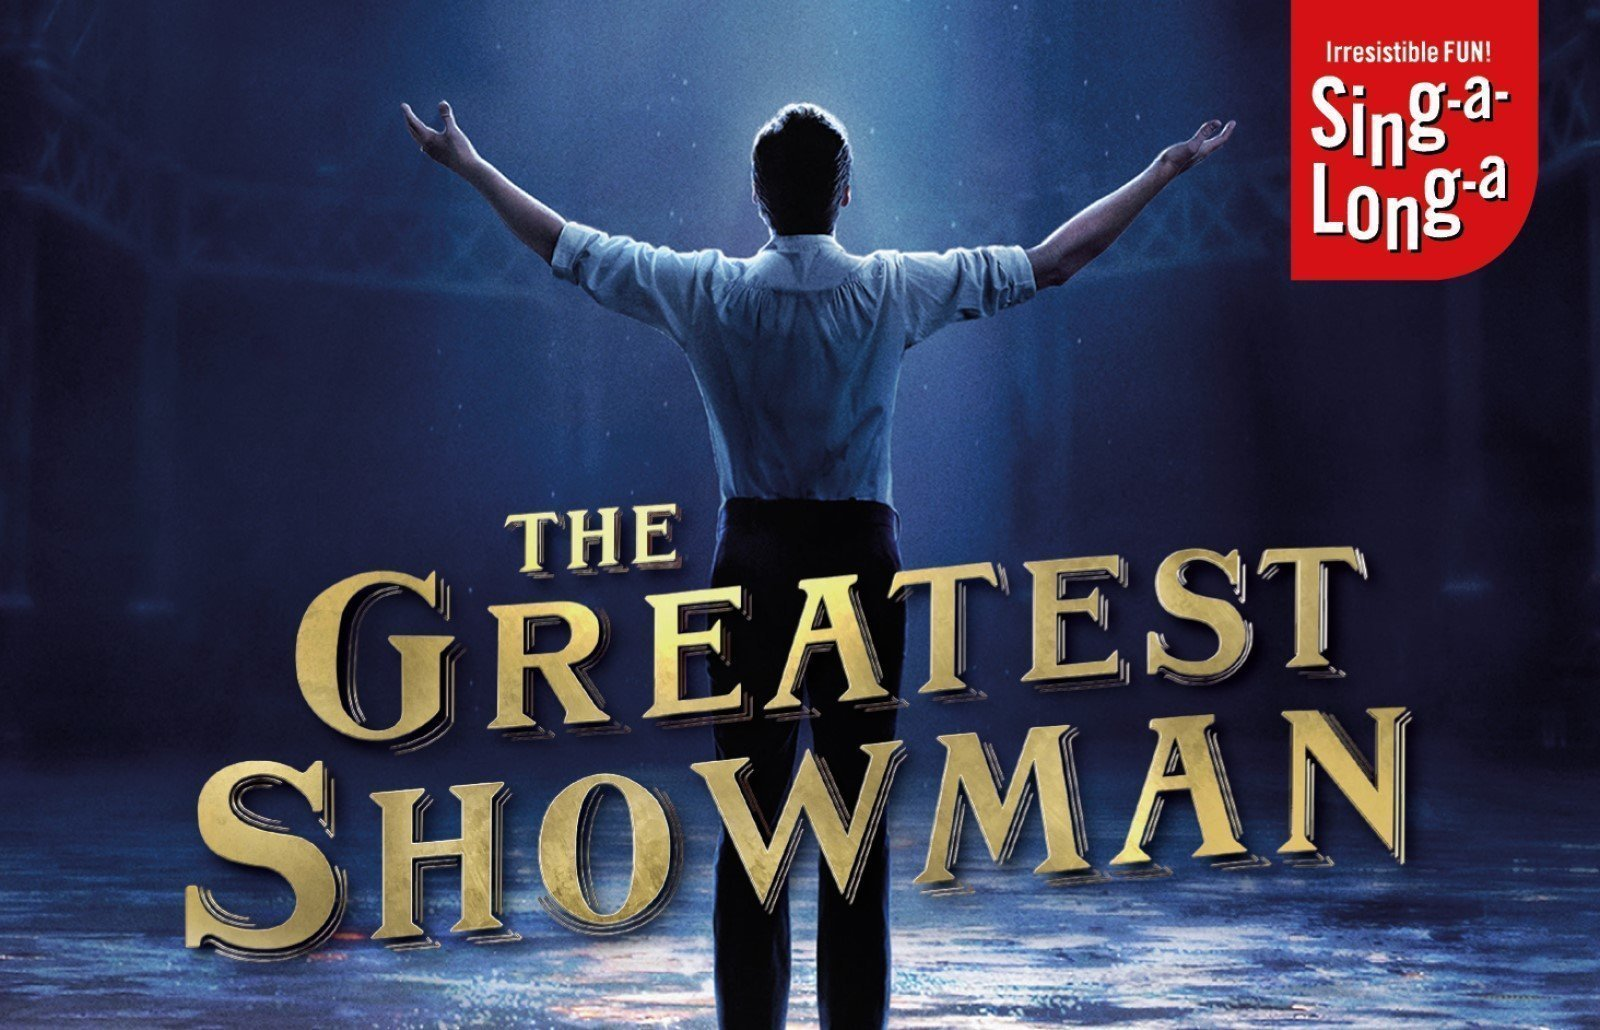 Poster for Sing-a-Long-a The Greatest Showman at New Theatre Oxford